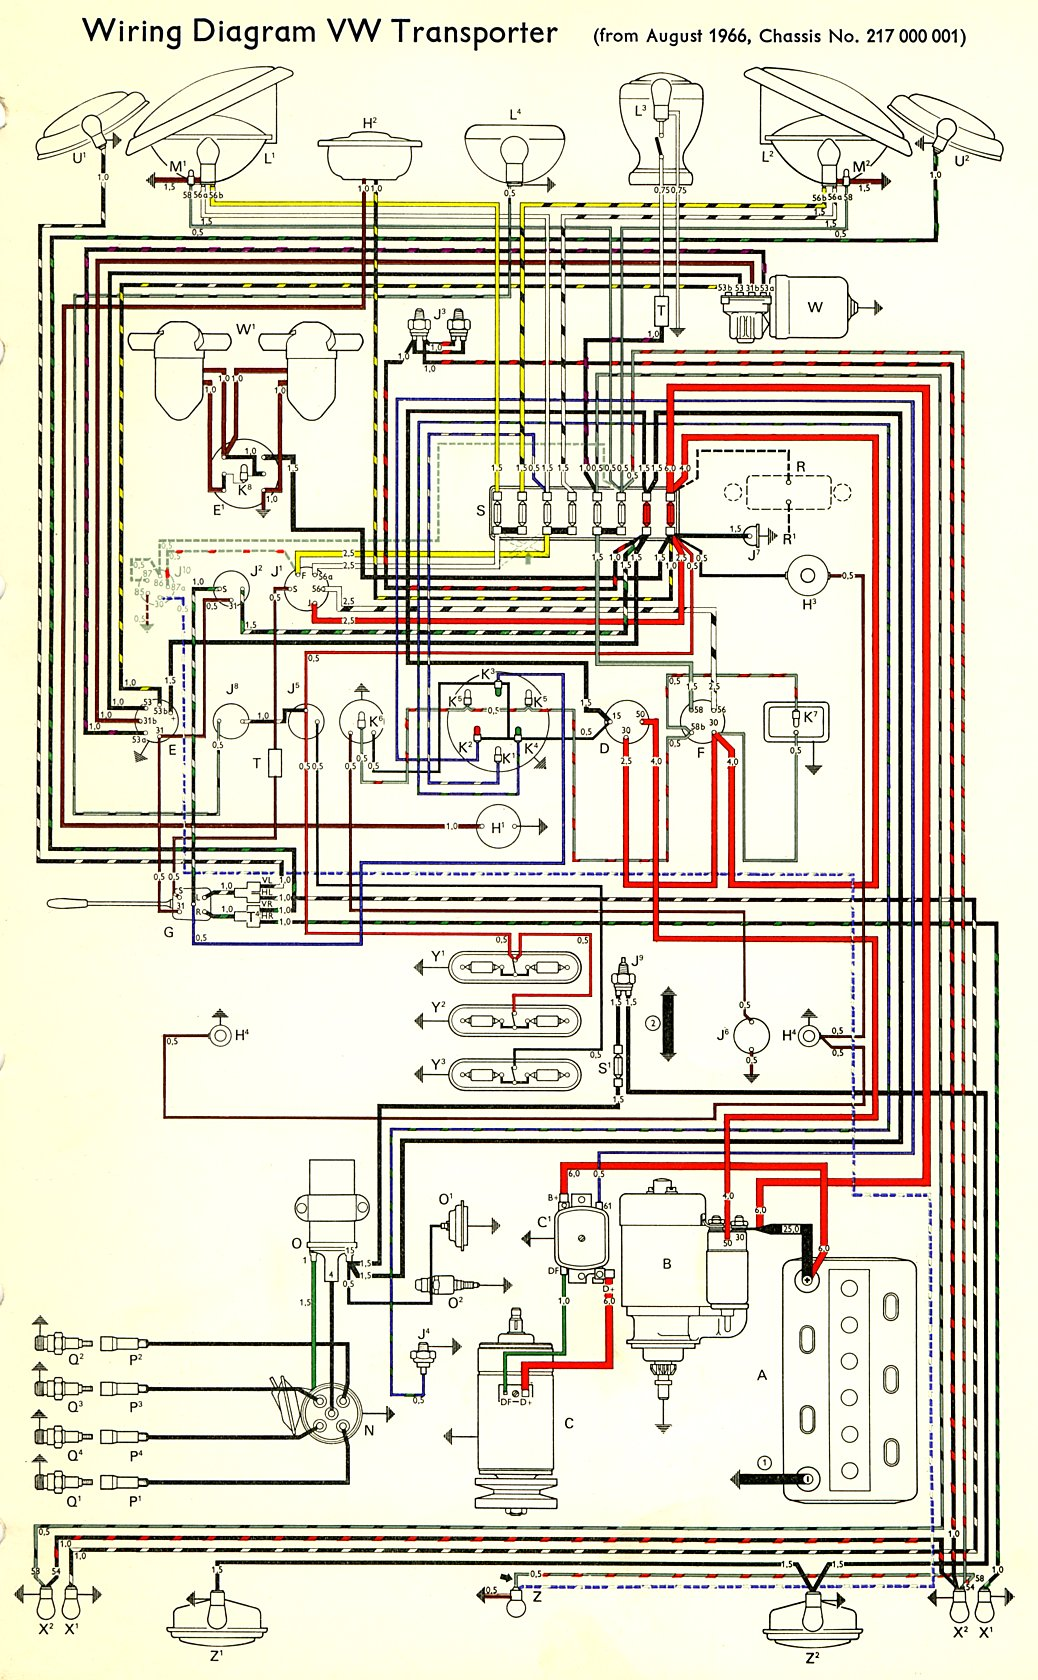 1967 Vw 1500 Wiring Diagram Auto Electrical 2000 F550 Bus